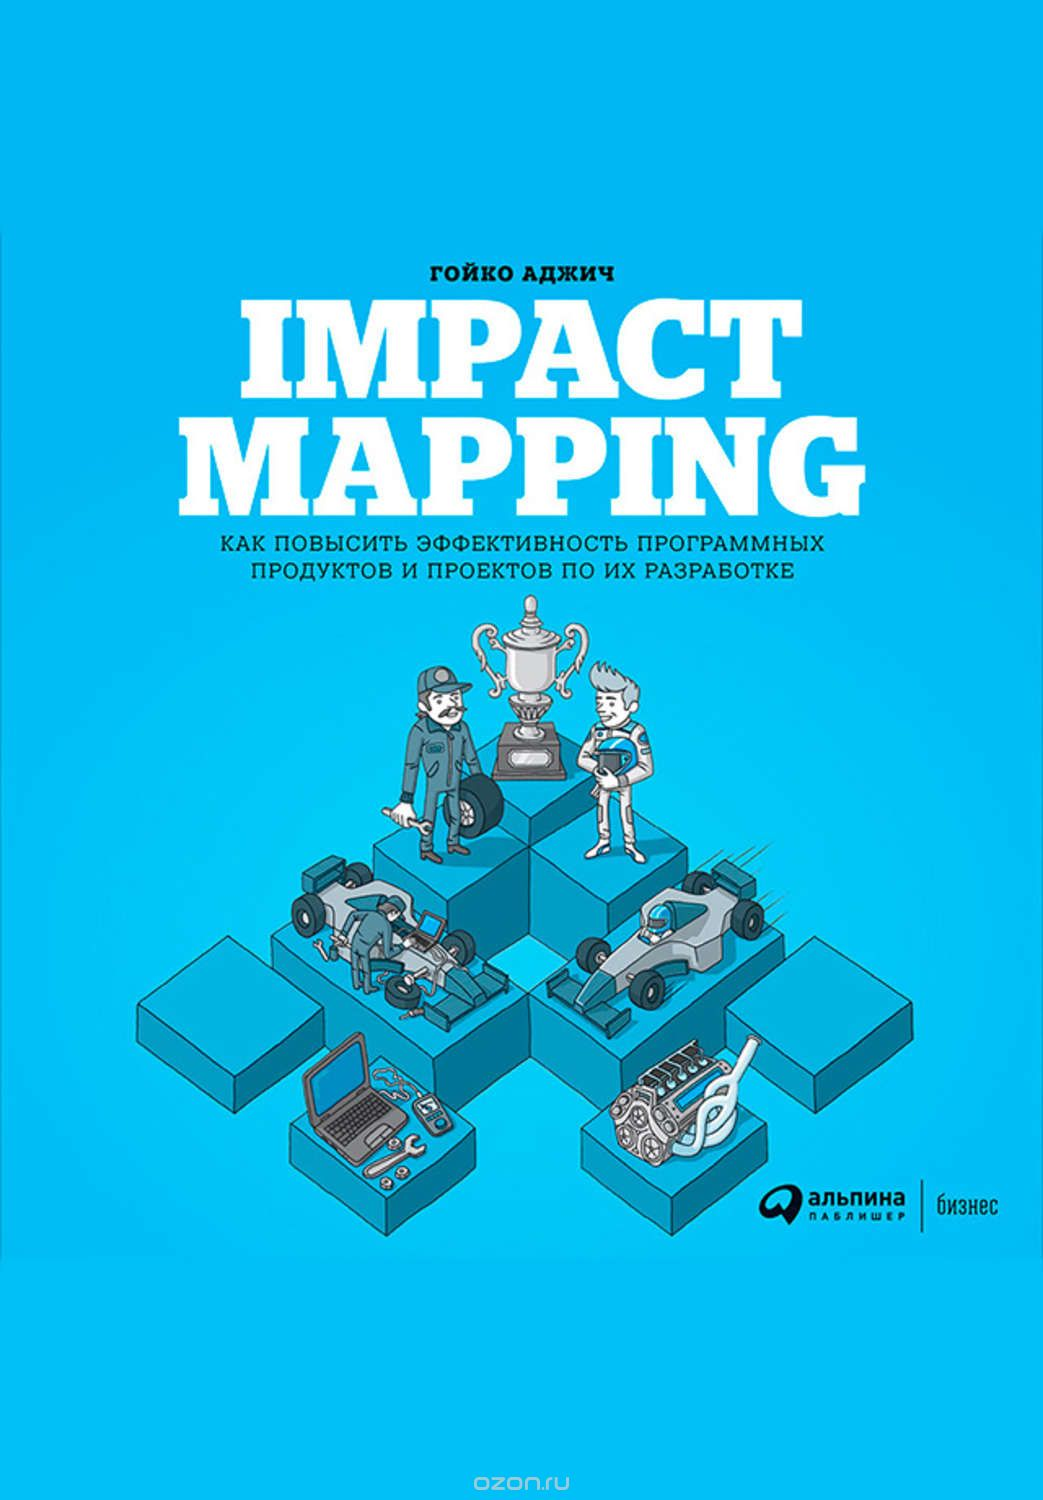 Impact mapping